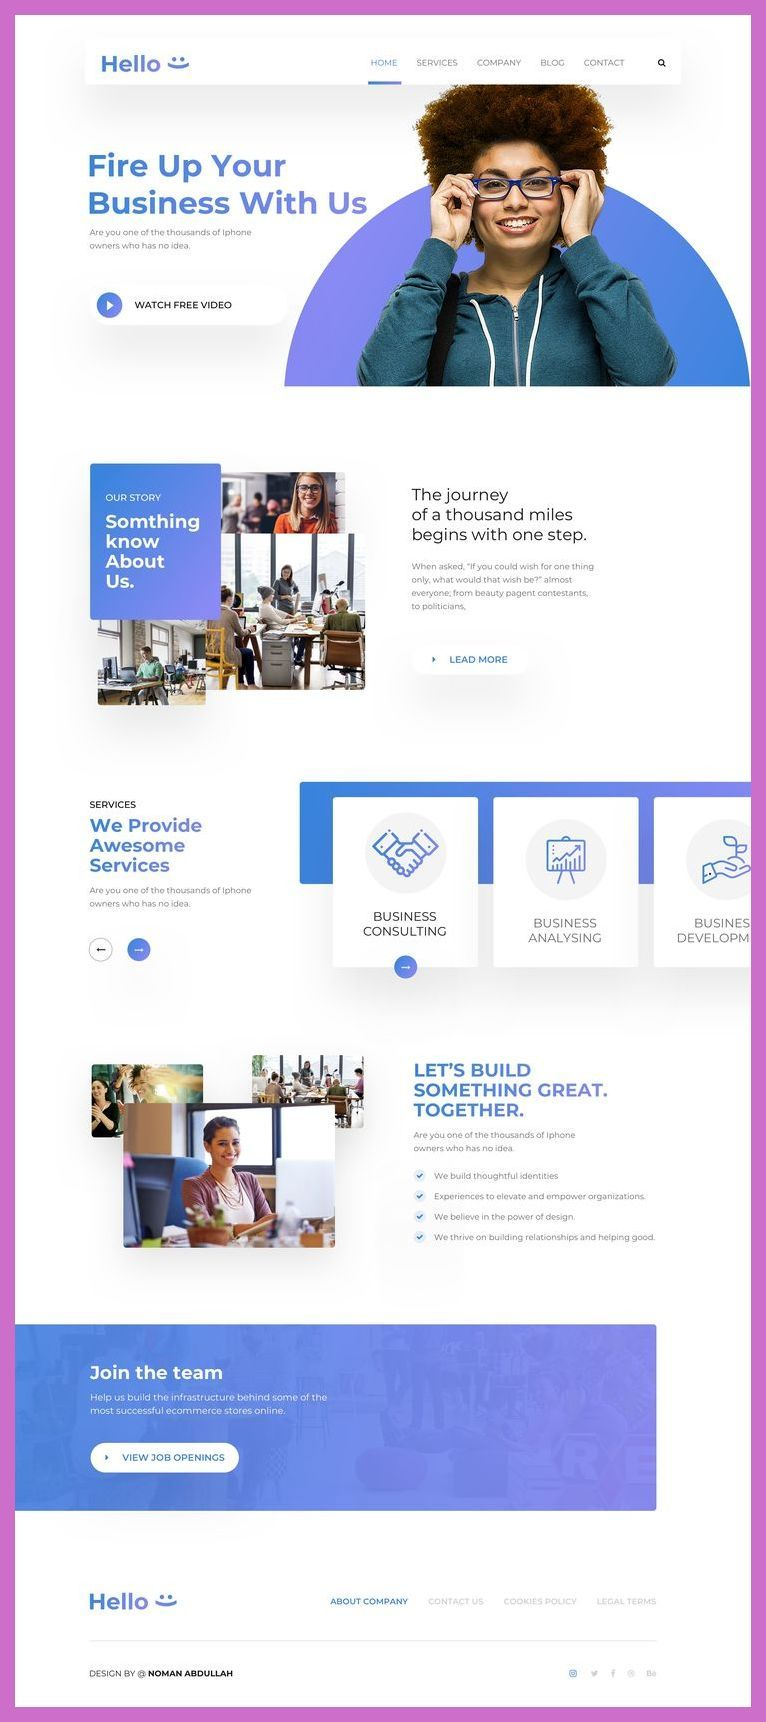 Best Responsive Websites 2018 Hello Home Page Landingpage Responsive Website Templates In 2020 Website Design Layout Wordpress Website Design Web Design Company